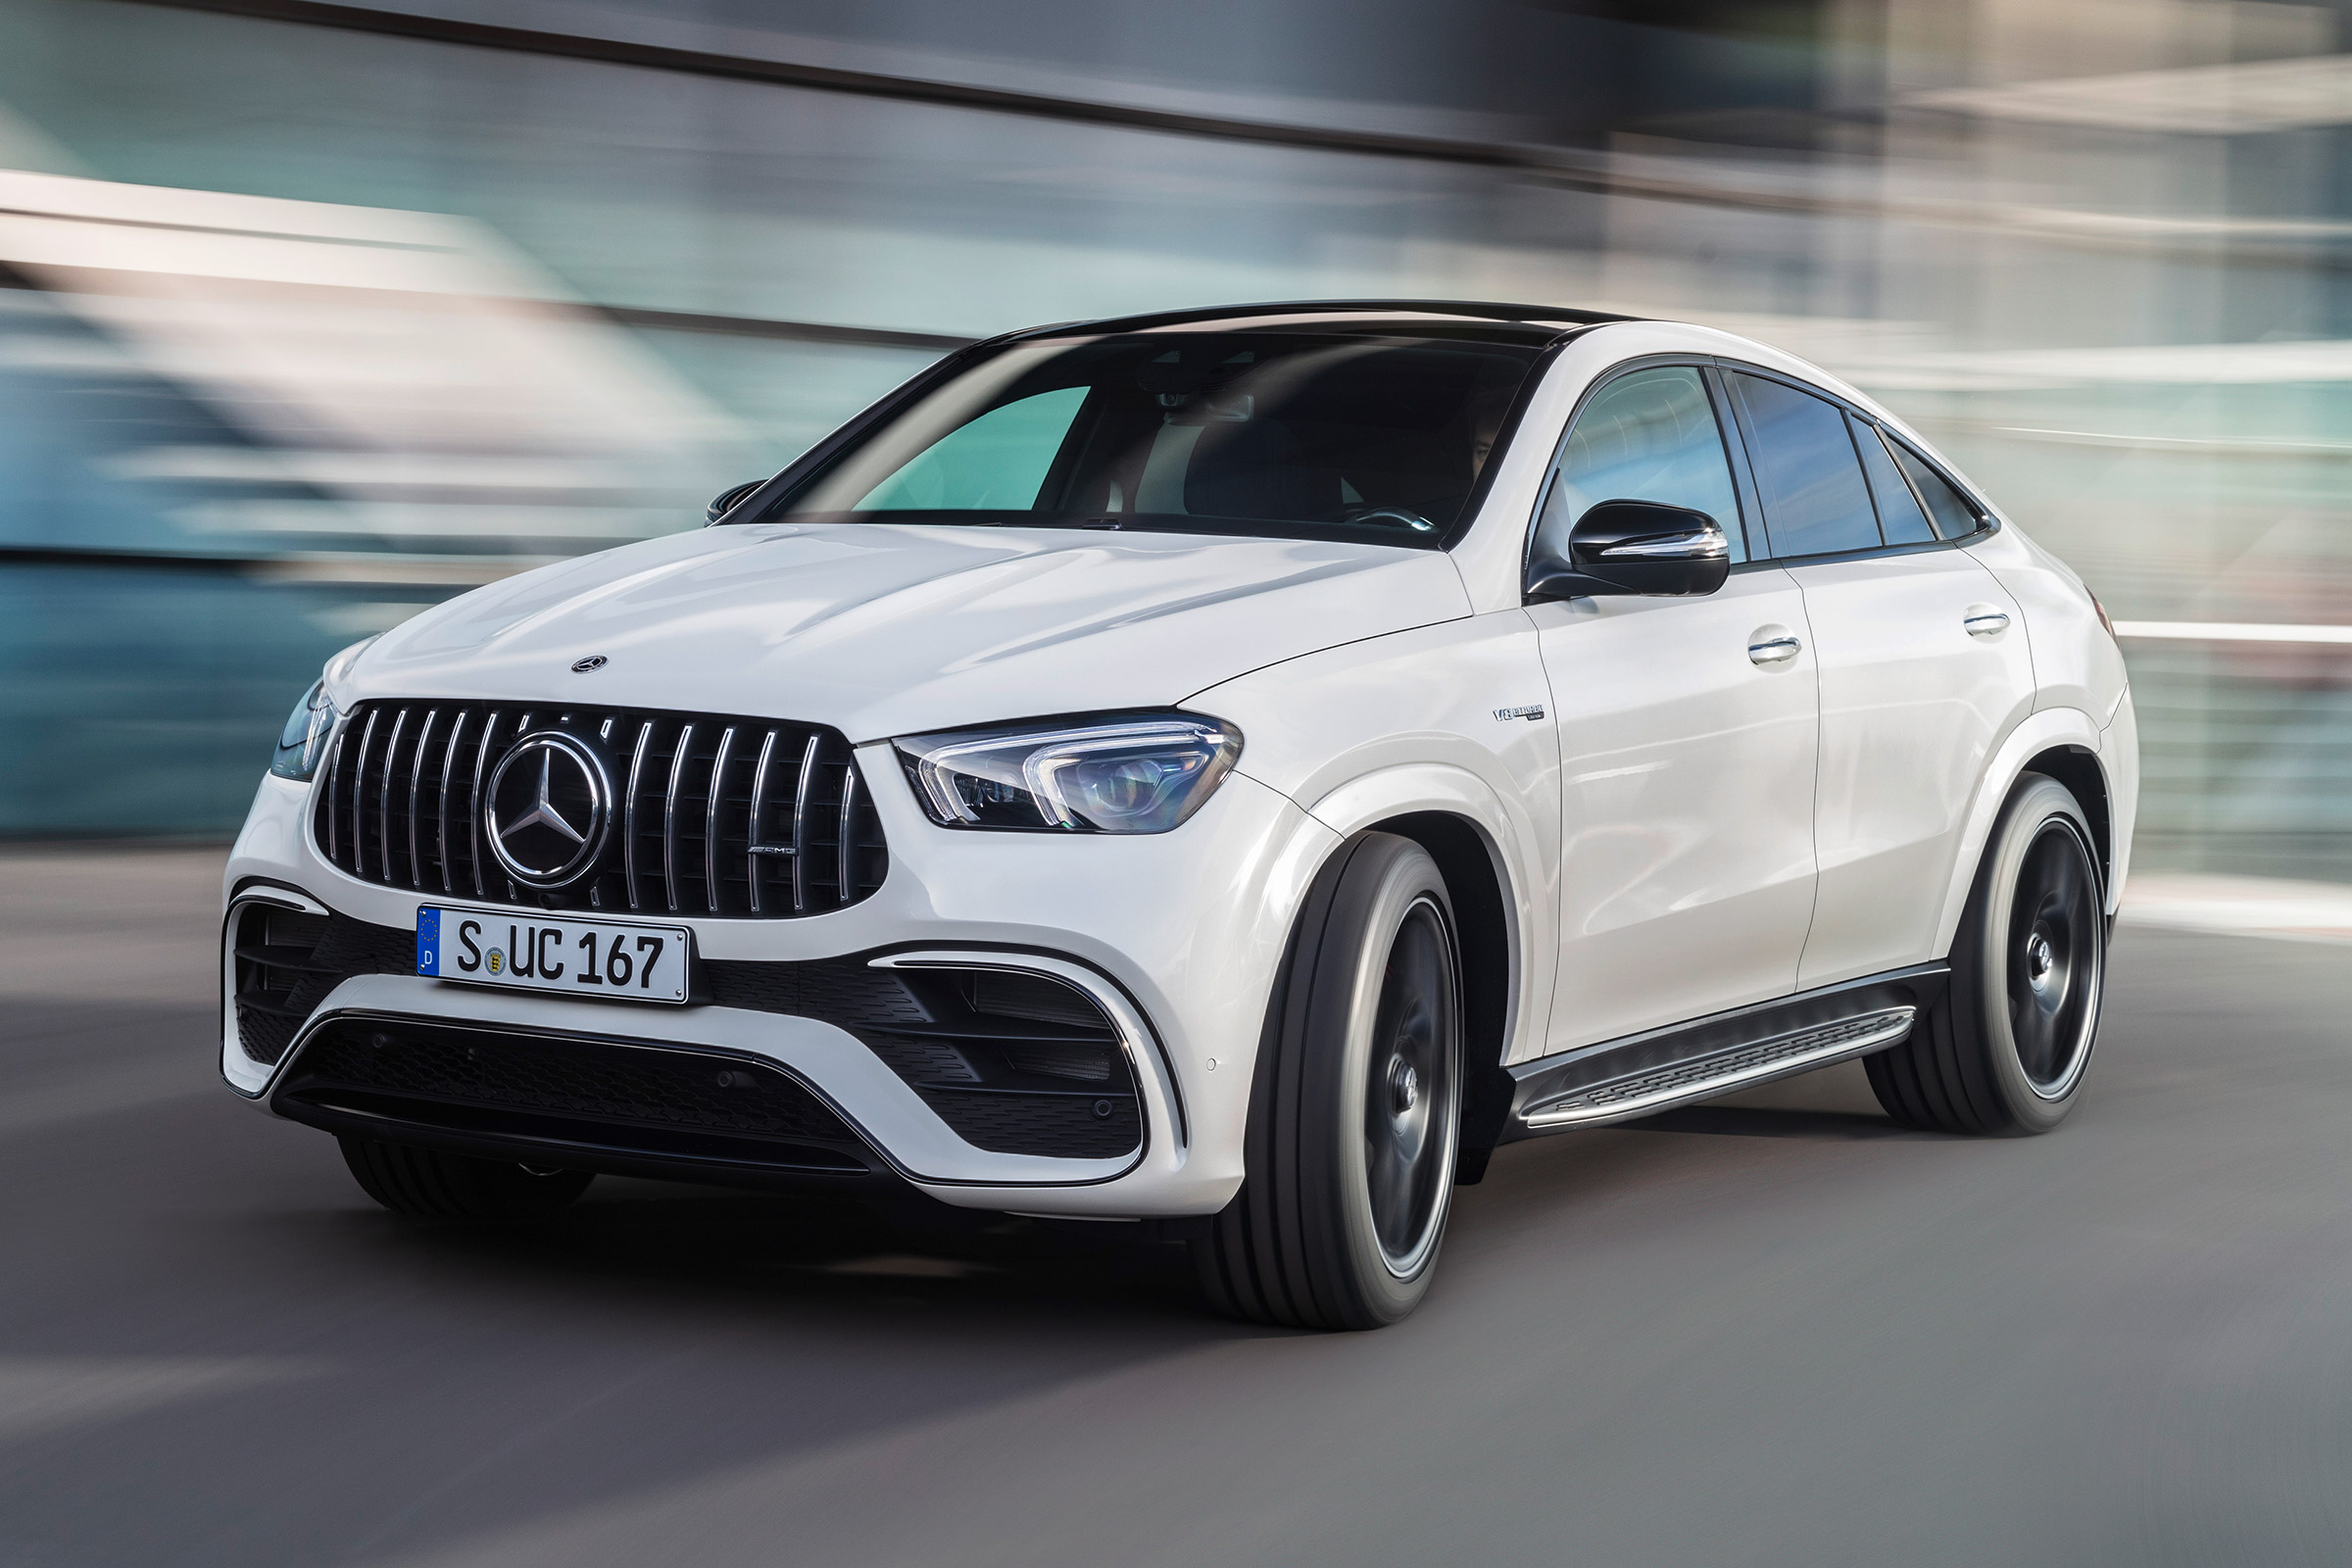 New Mercedes Amg Gle 63 S Coupe To Rival Bmw X6 M With 603bhp Auto Express